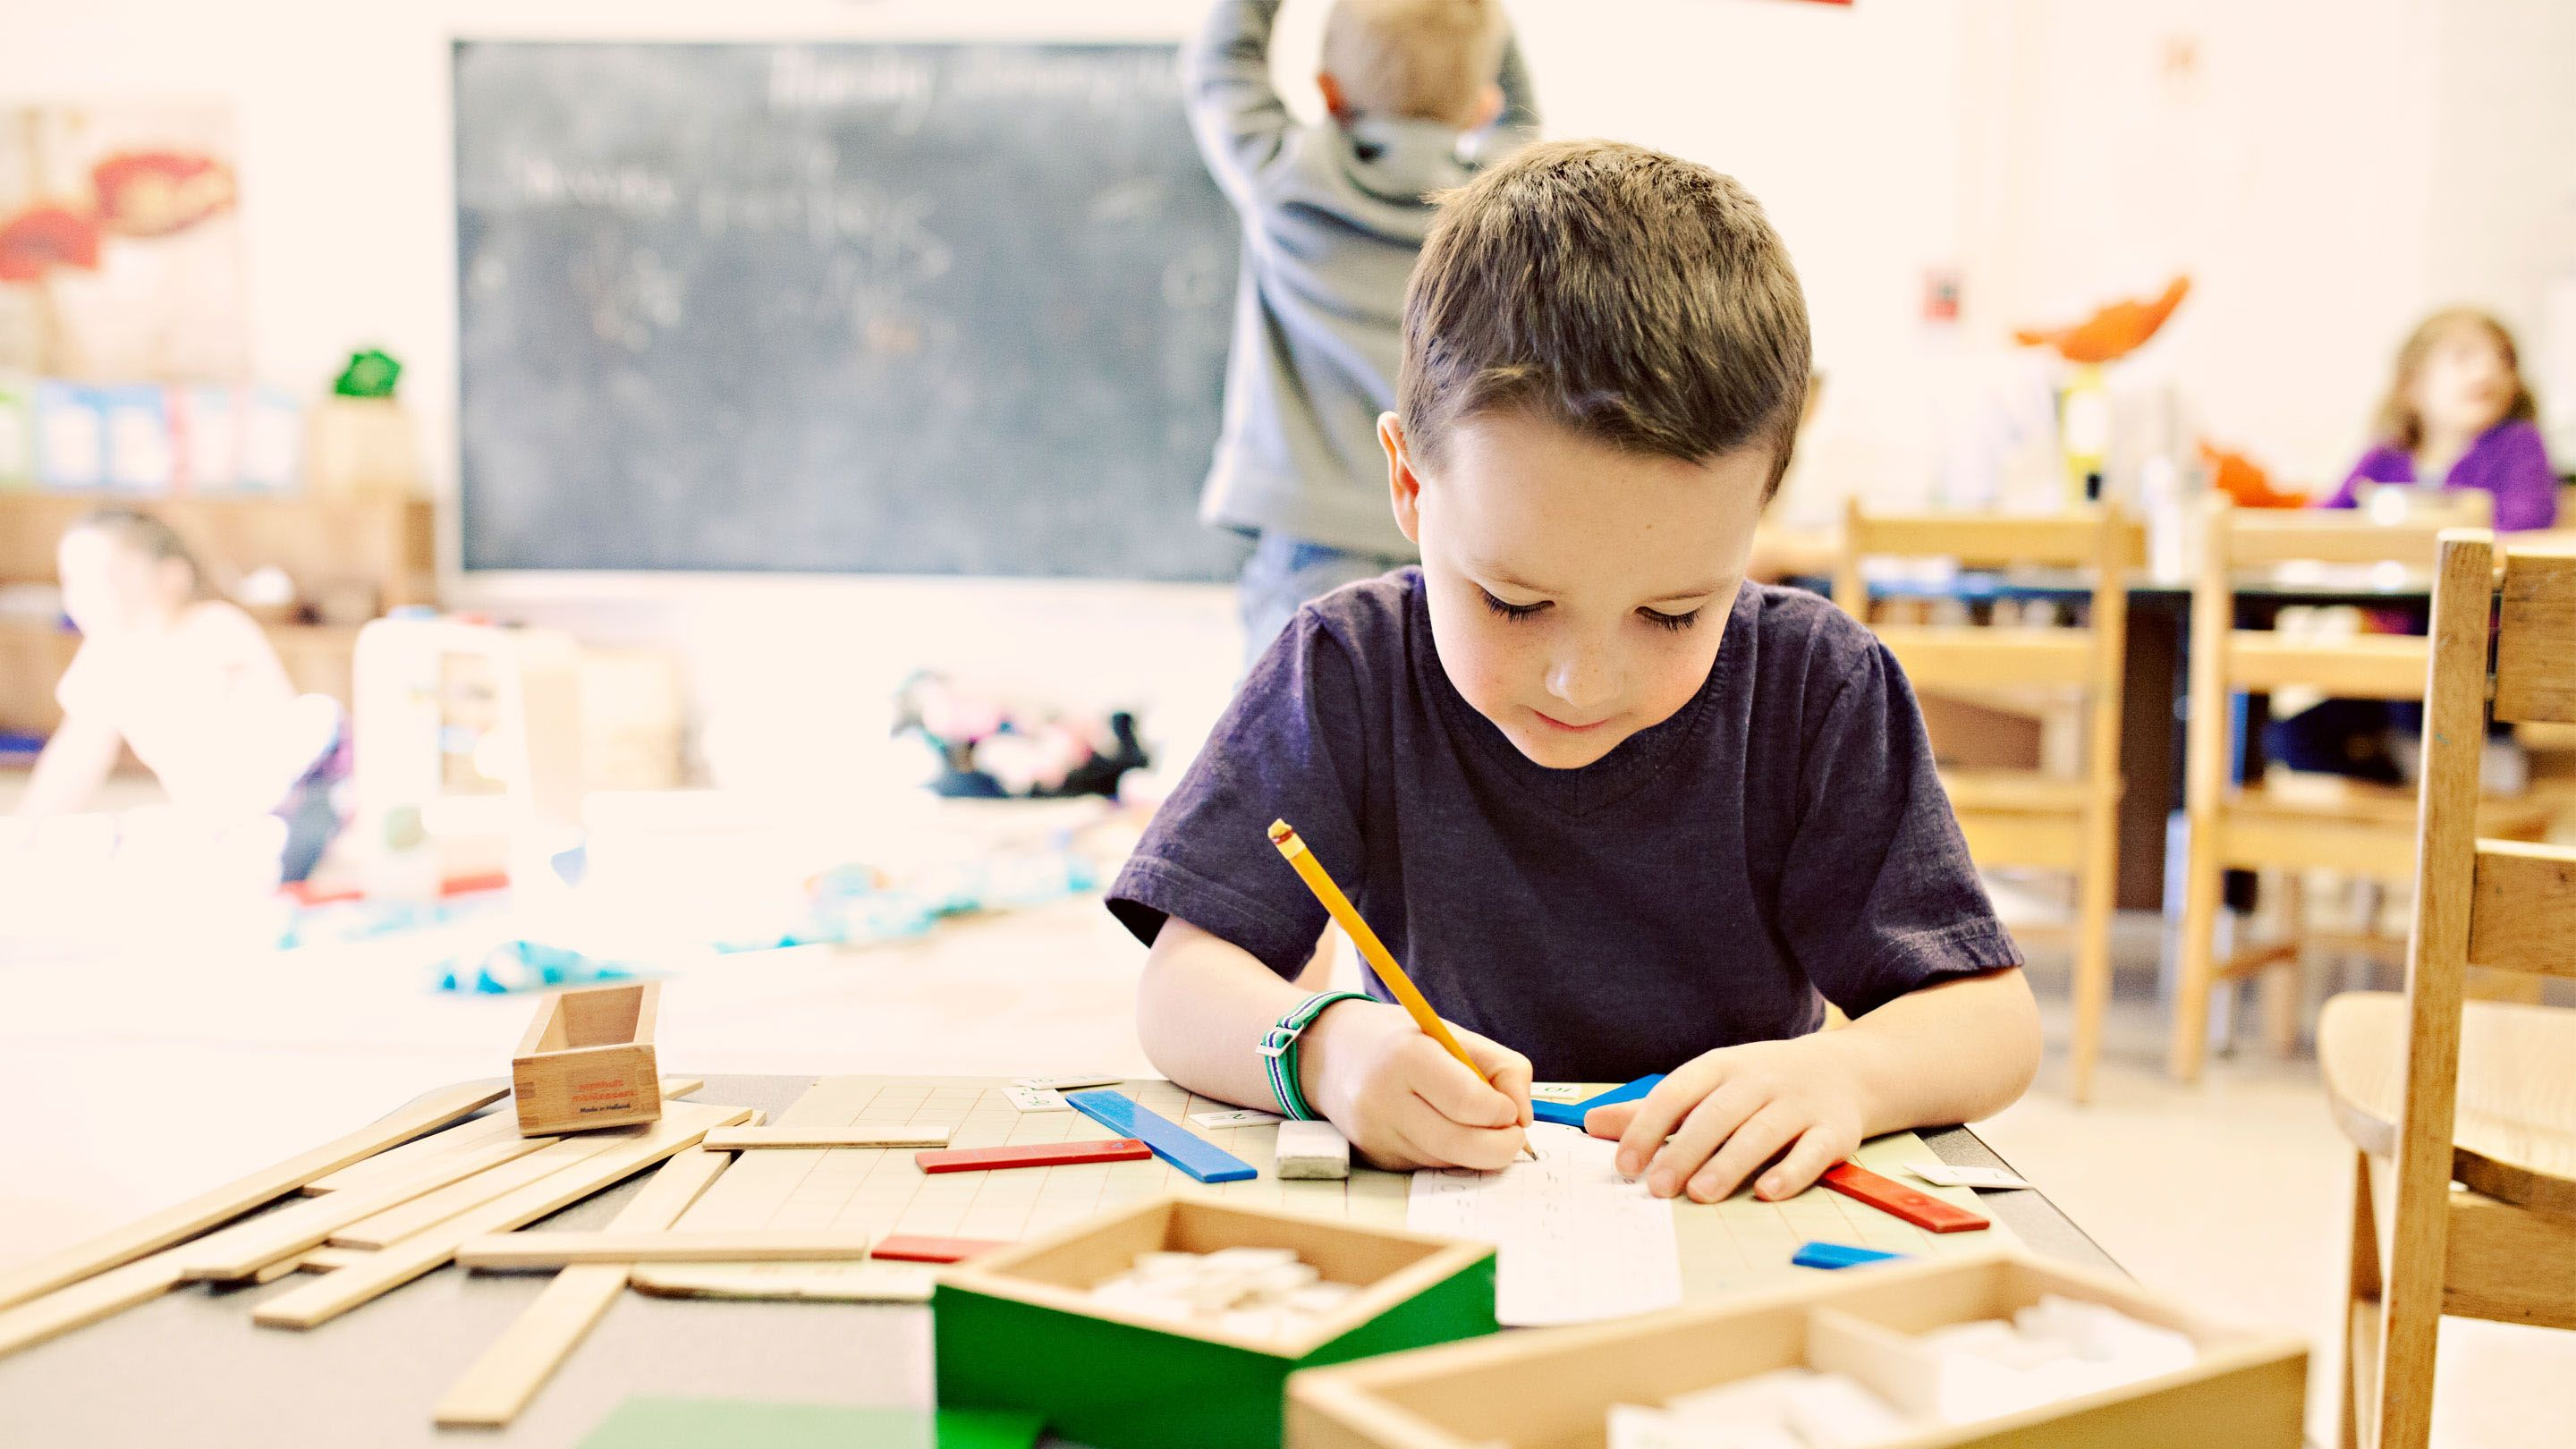 young boy in school working alone